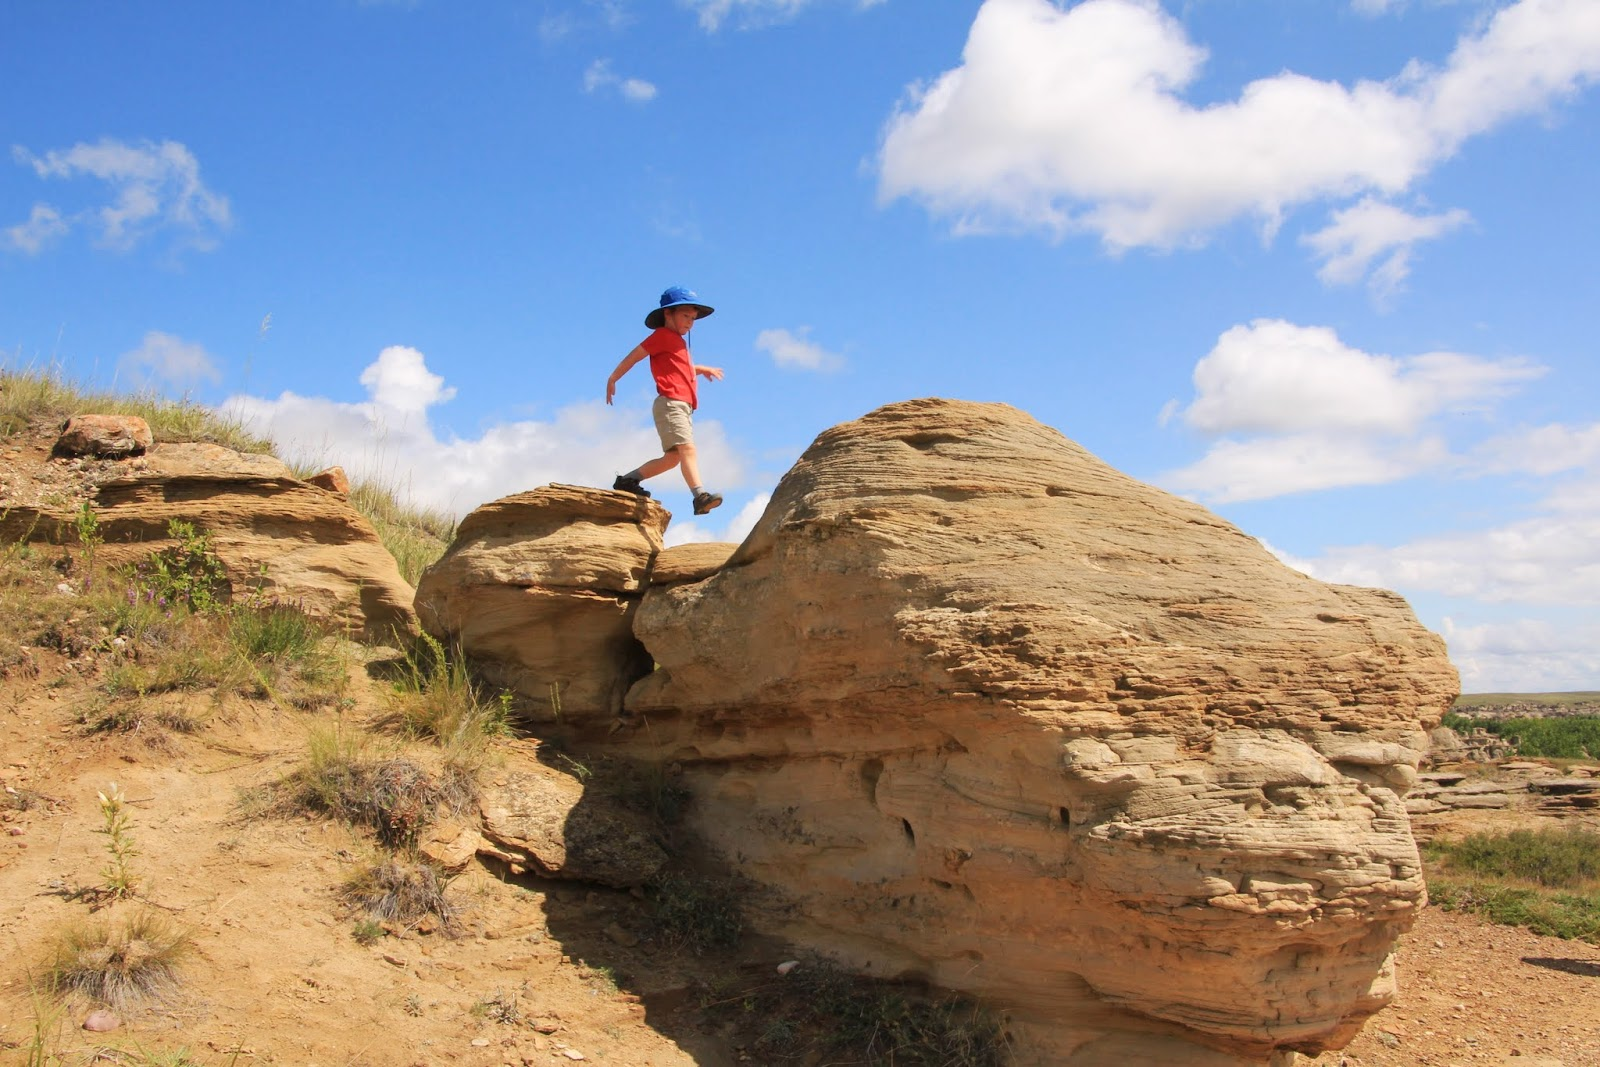 camping here visit this link to camping in writing on stone provincial